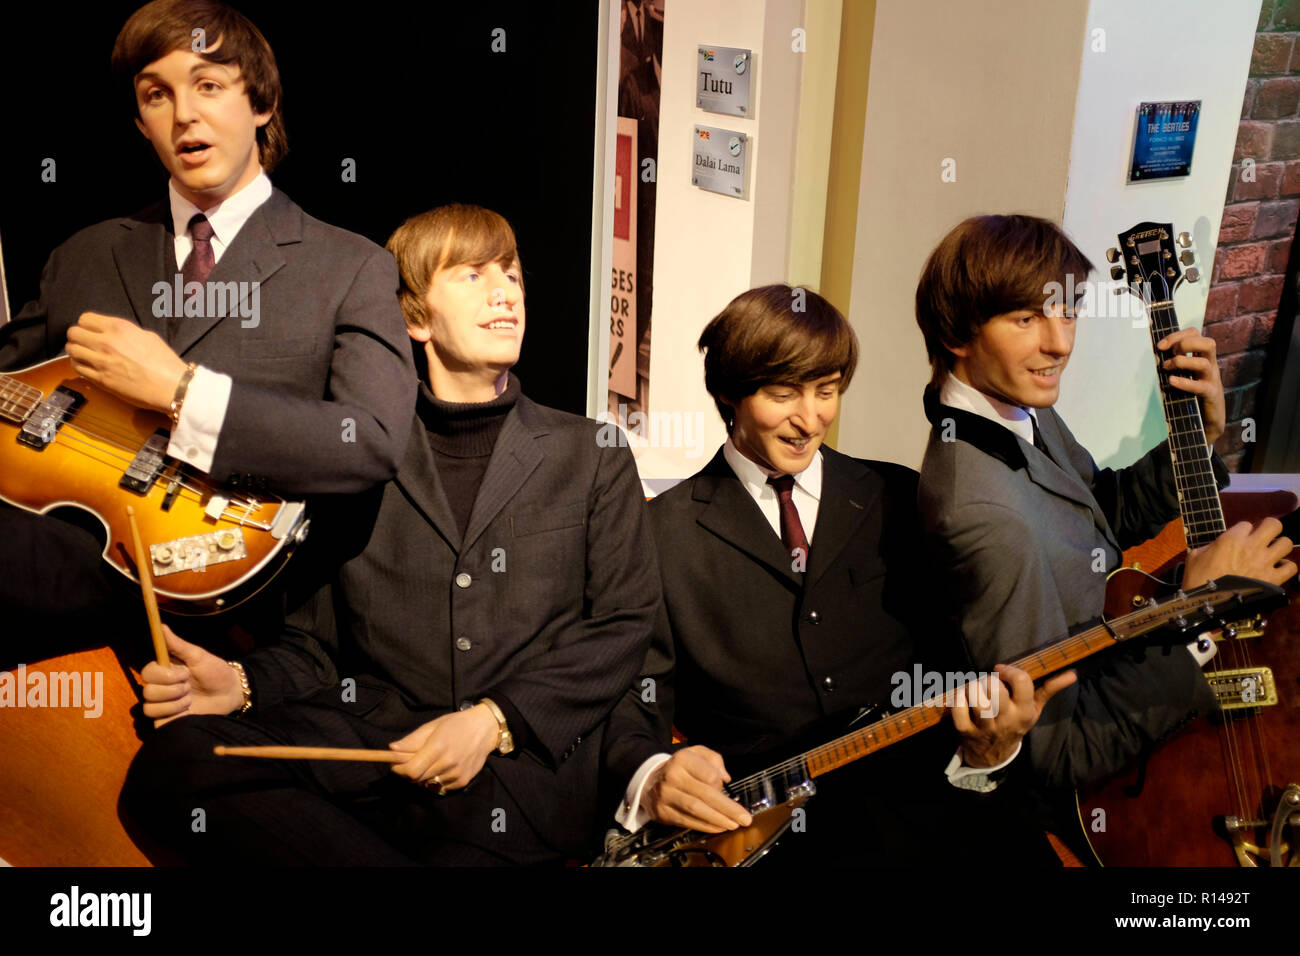 Wax figure of the Beatles at world renowned tourist attraction Madame Tussauds Wax museum in London, United Kingdom. - Stock Image